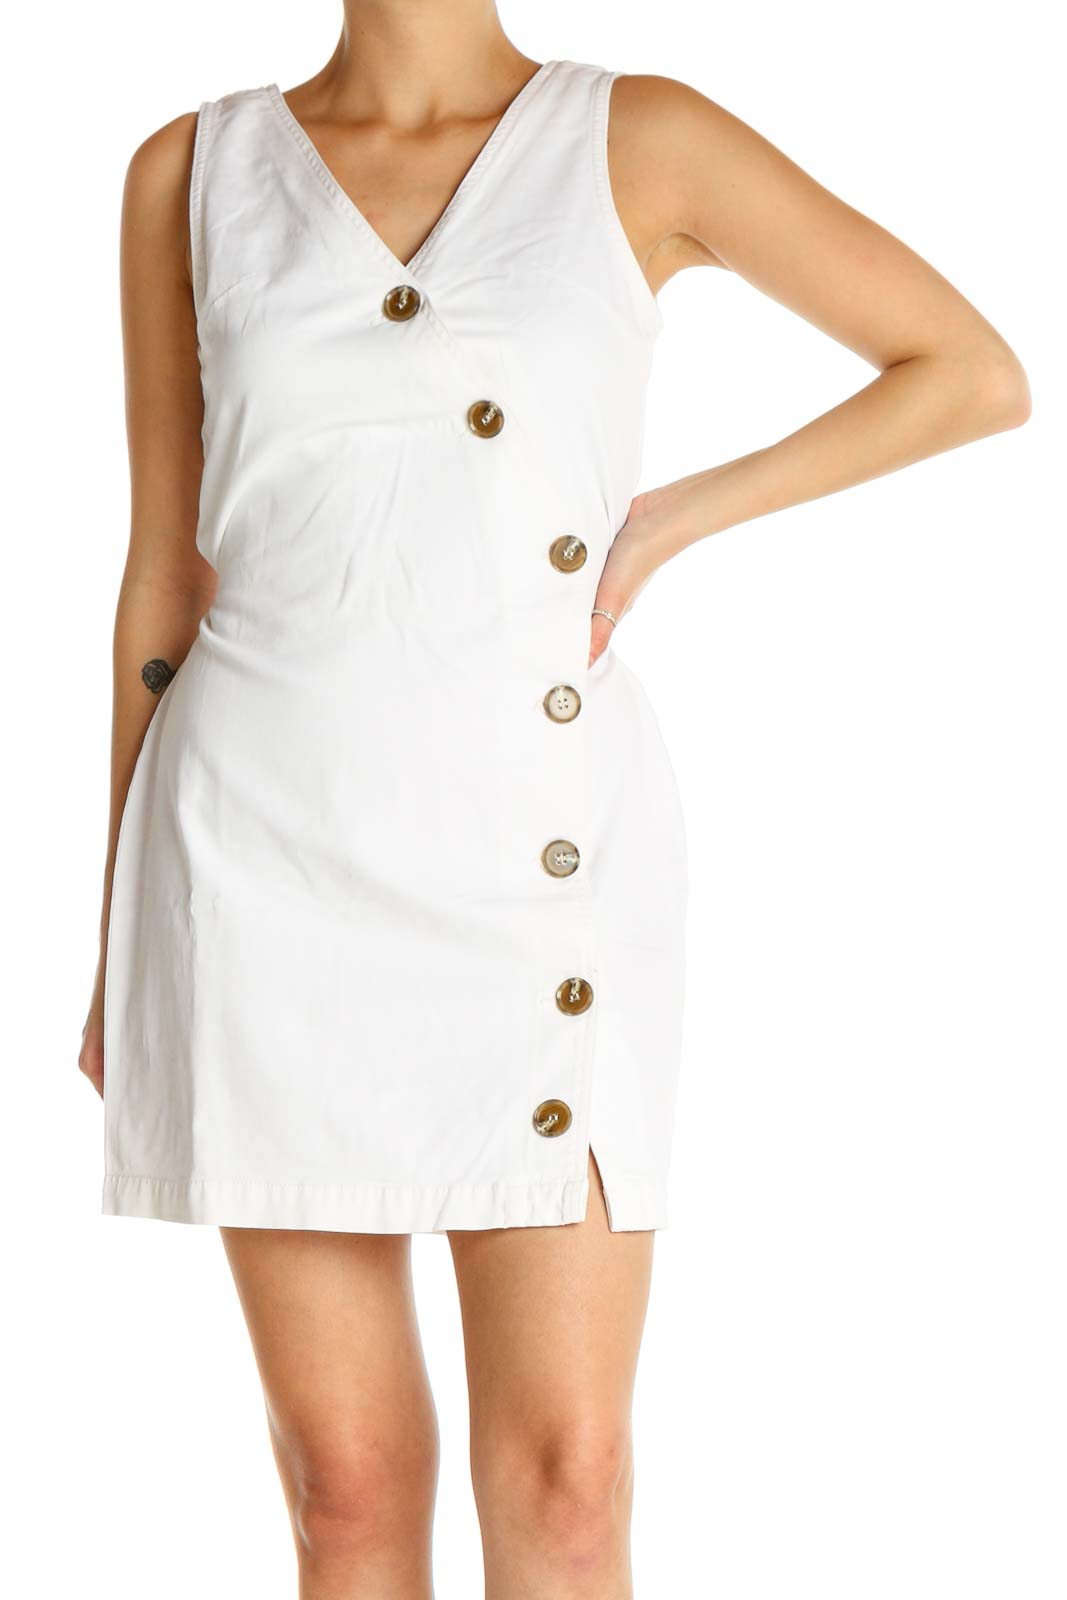 White Solid Classic Sheath Dress Front